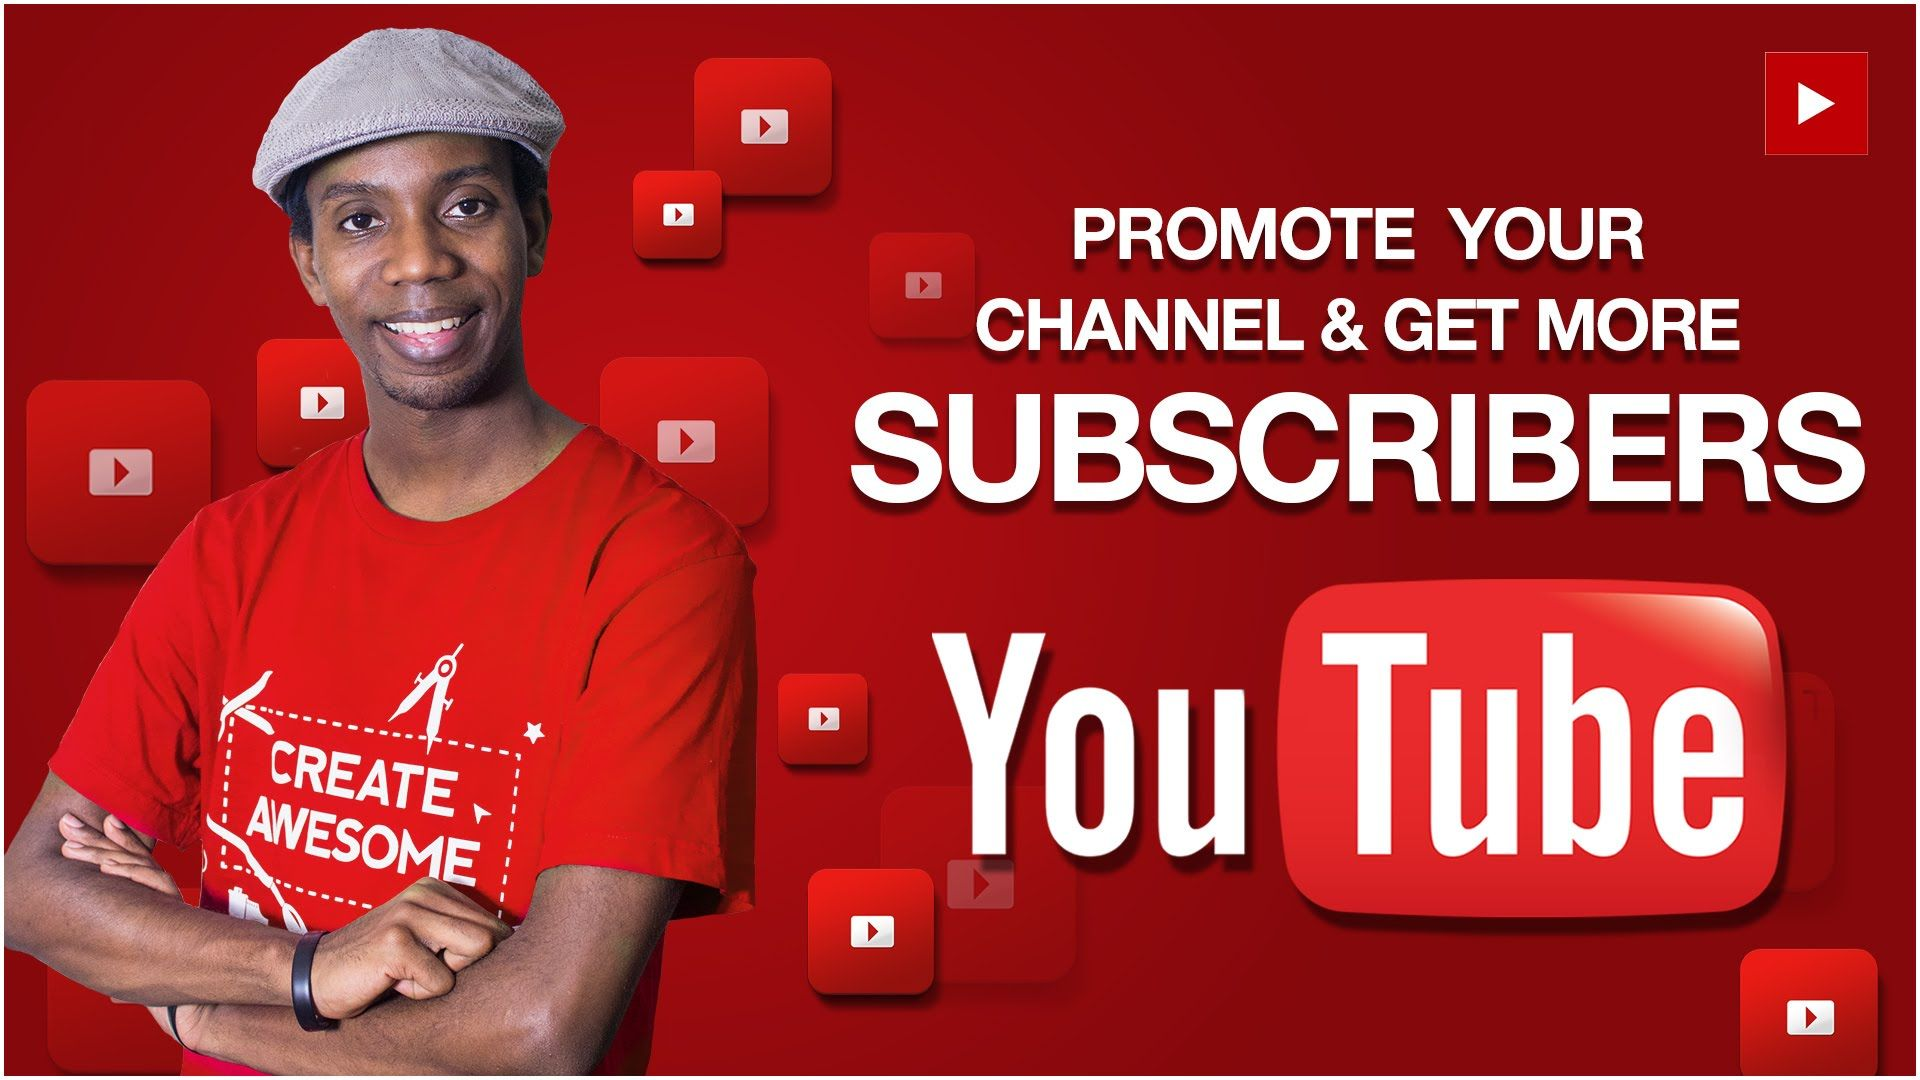 The Best Way Promote Your Youtube Channel And Get More Subscribers Promoting Your Youtube Channel Will Hel Promotional Video Youtube Subscribers Youtube Views